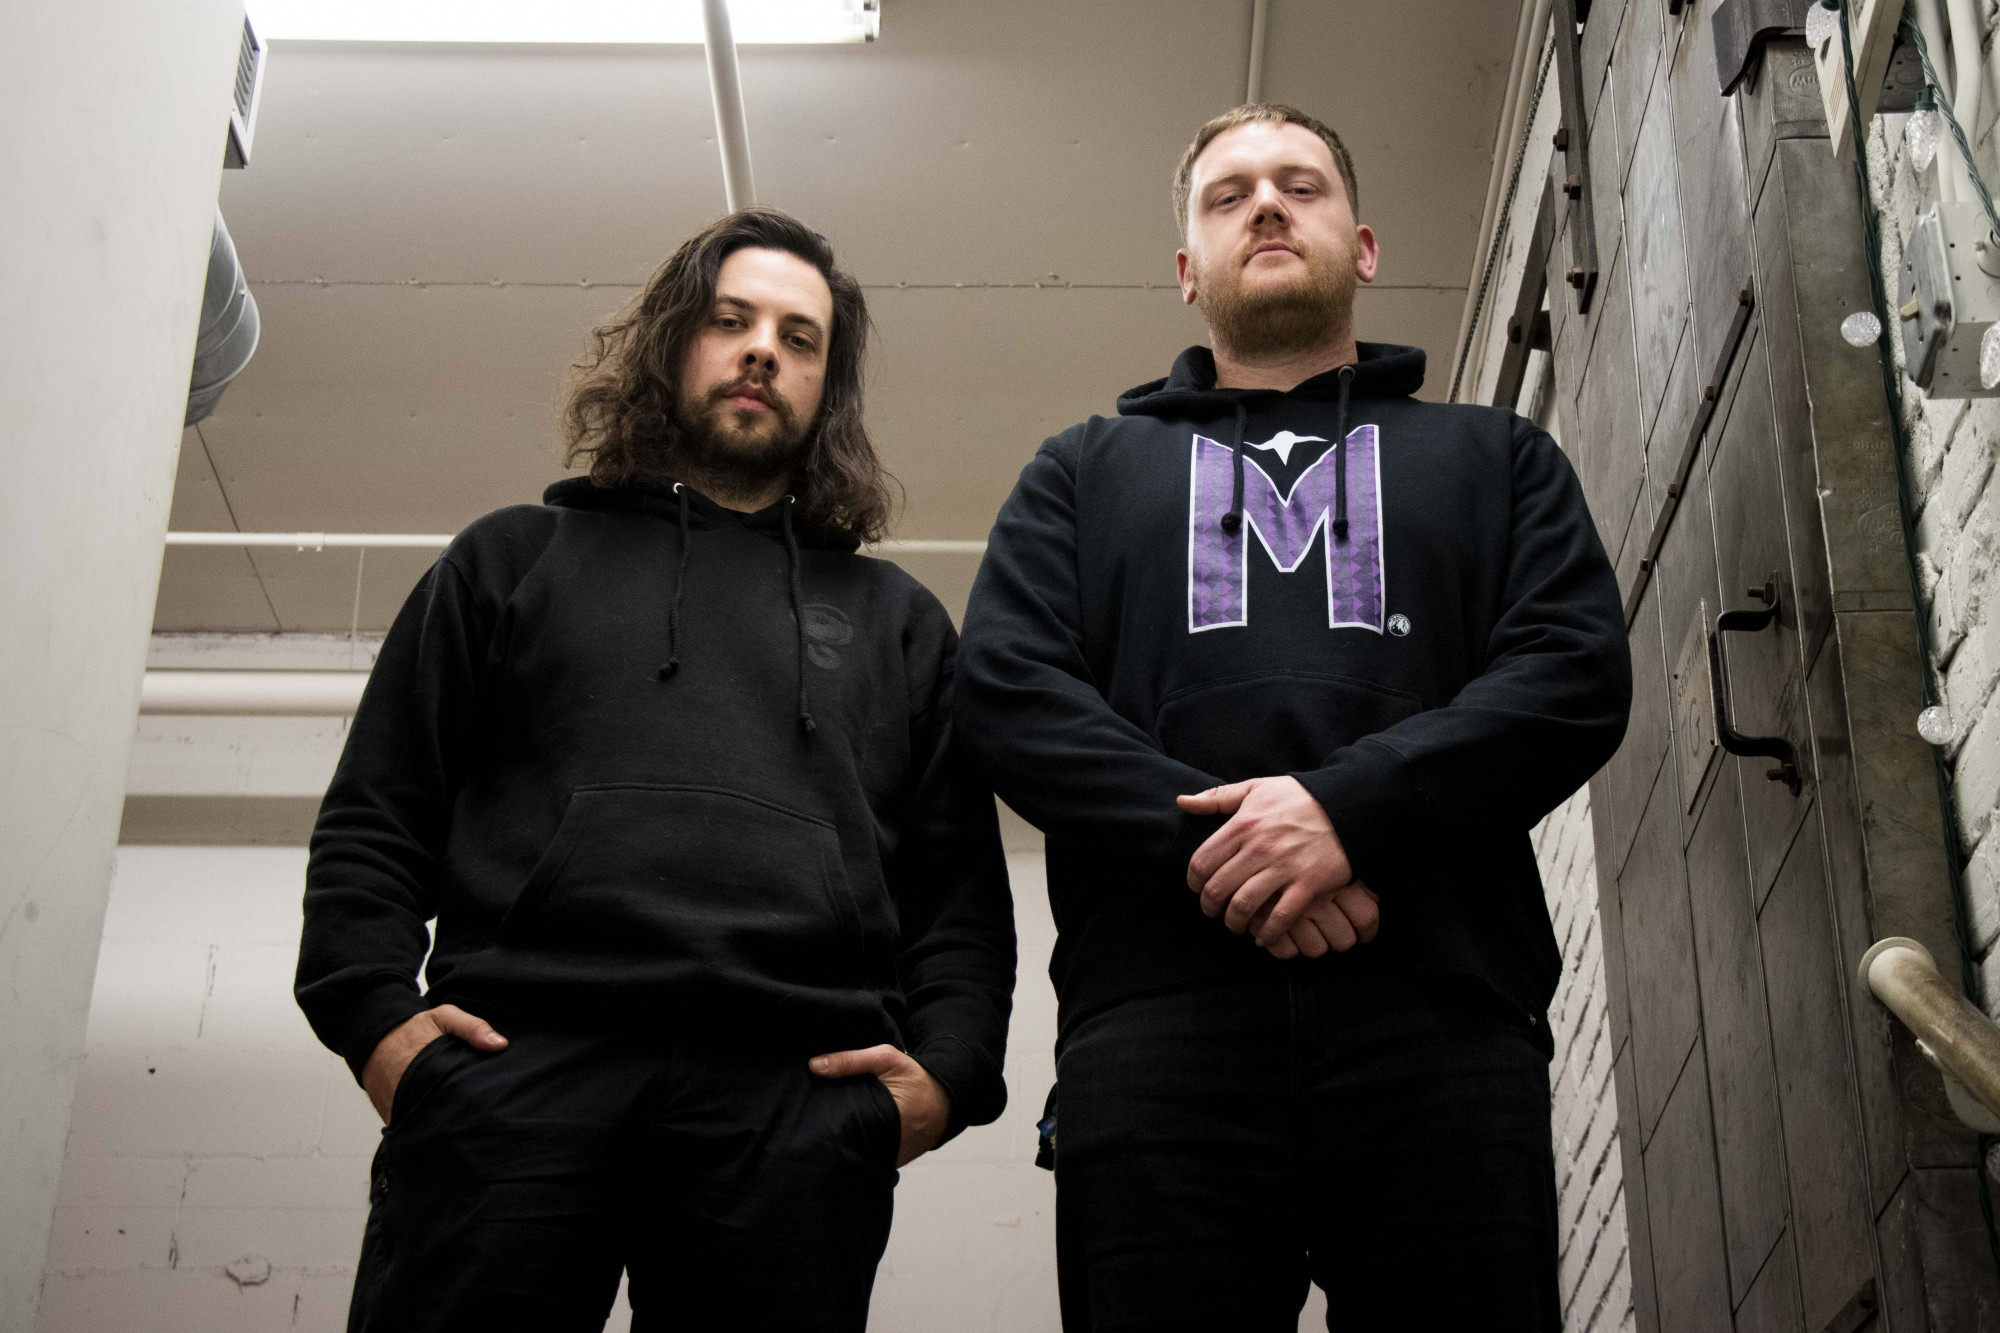 Jim Brenk, left, and Cameron Dickison, right, who make up the electronic music duo Niles Shepard, pose for a portrait in their studio space next to Bauhaus Brew Labs on Thursday, Nov. 14.